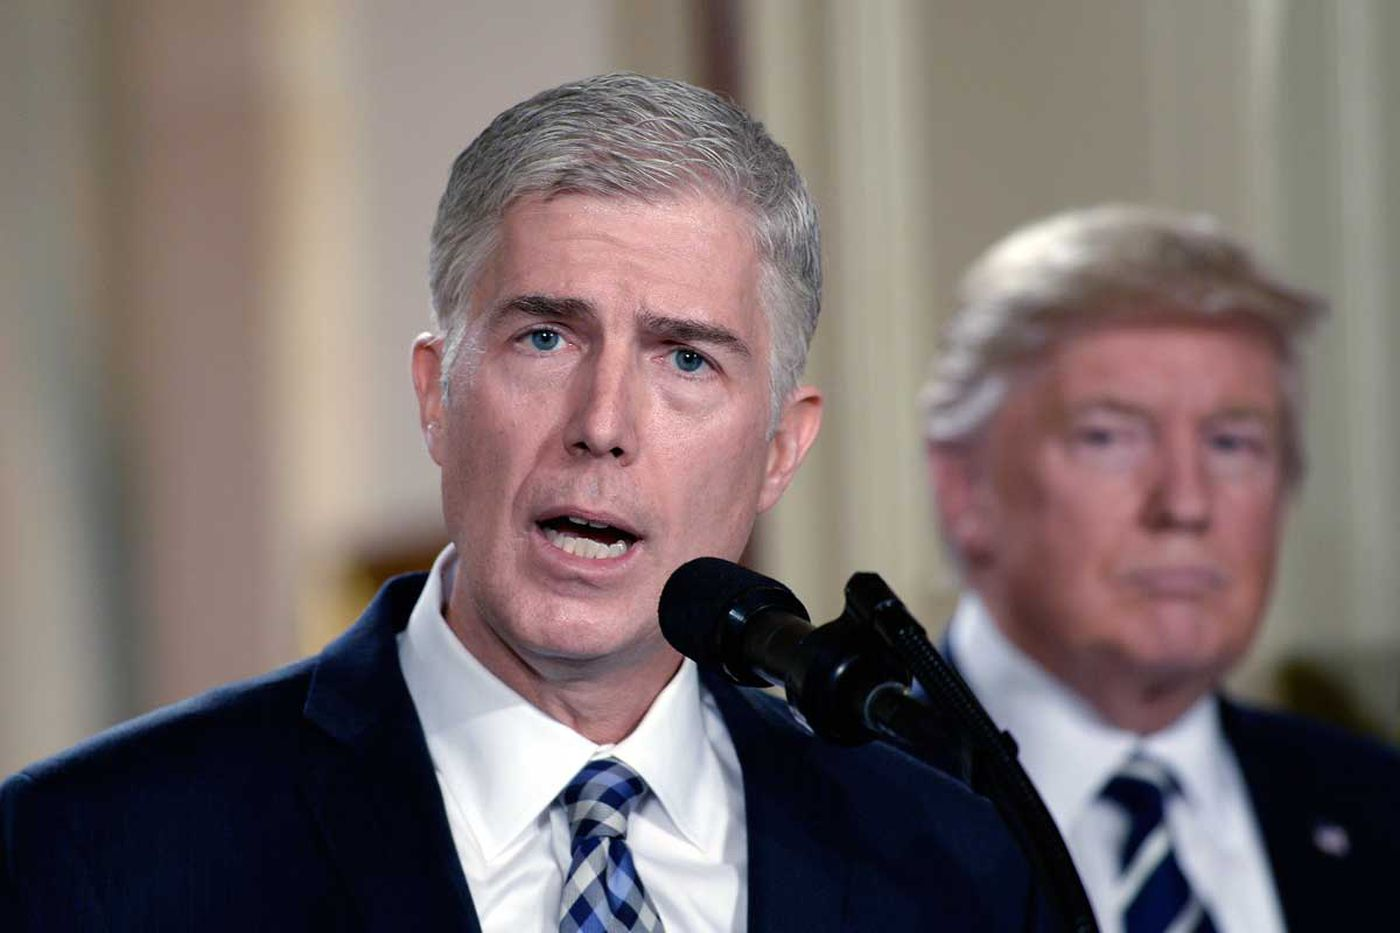 Inquirer Editorial: Democrats should give Gorsuch fair hearing Obama nominee never got